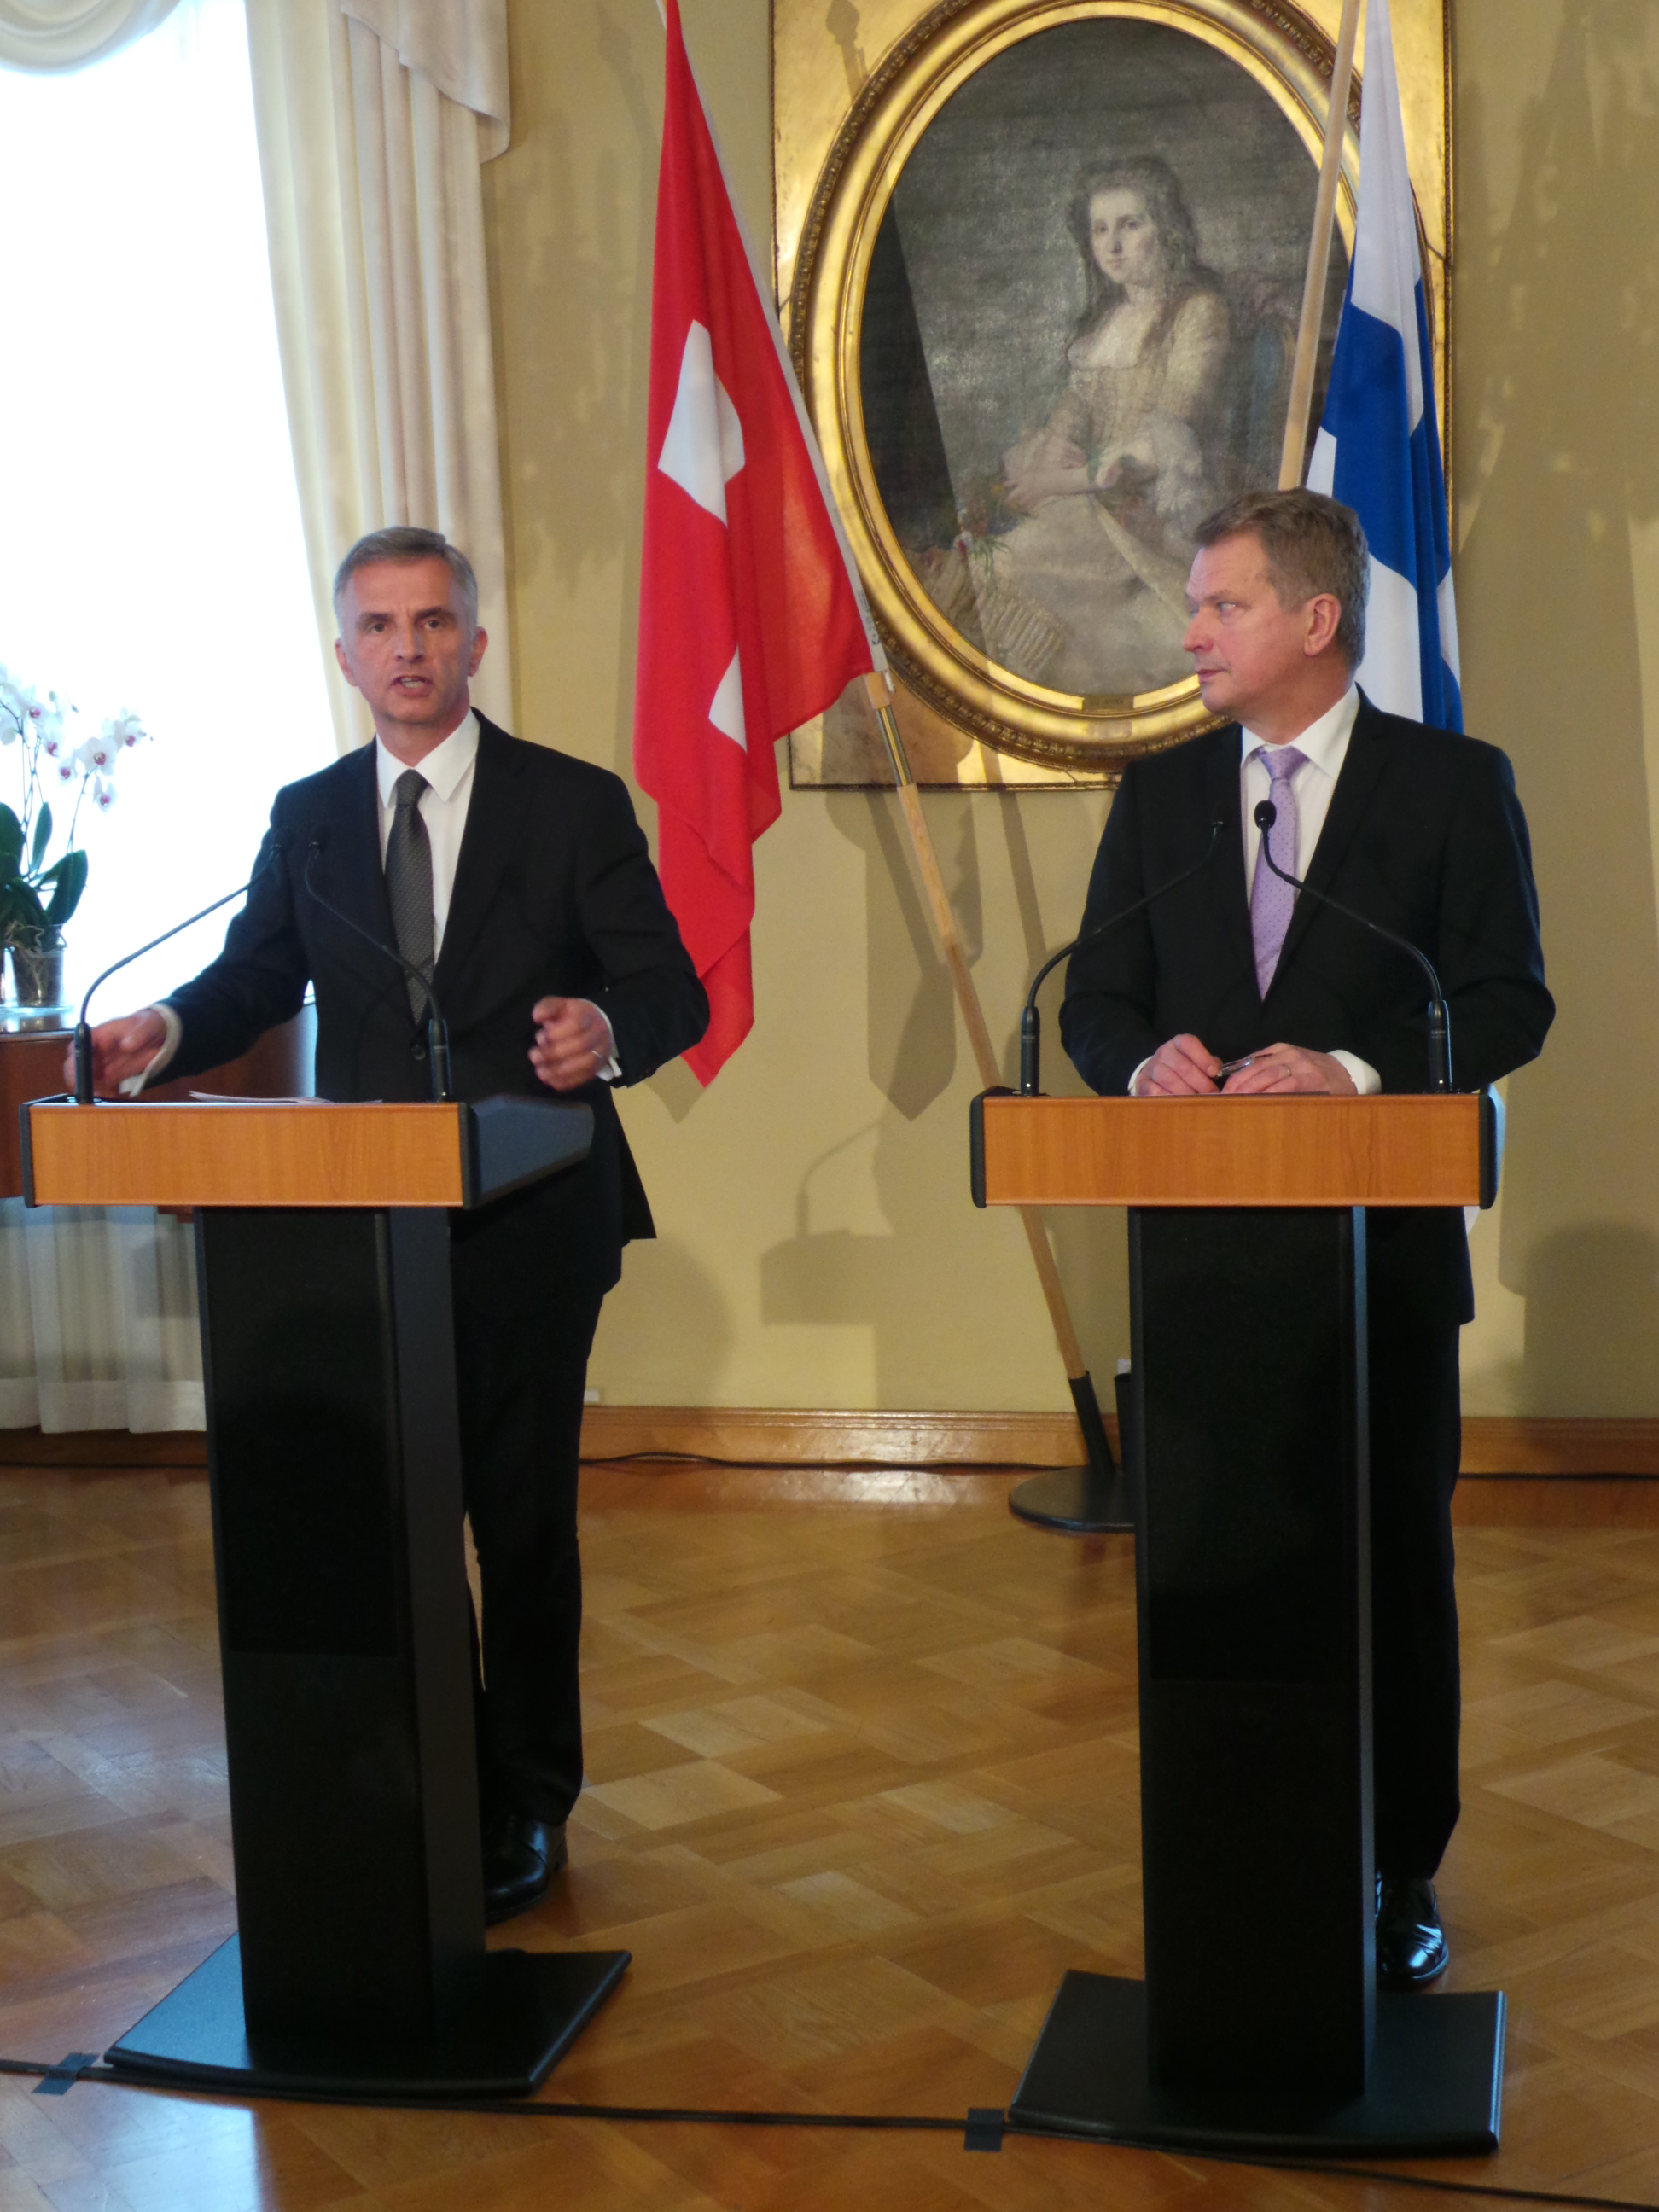 Didier Burkhalter and the Finnish president, Sauli Niinistö, during a press conference.